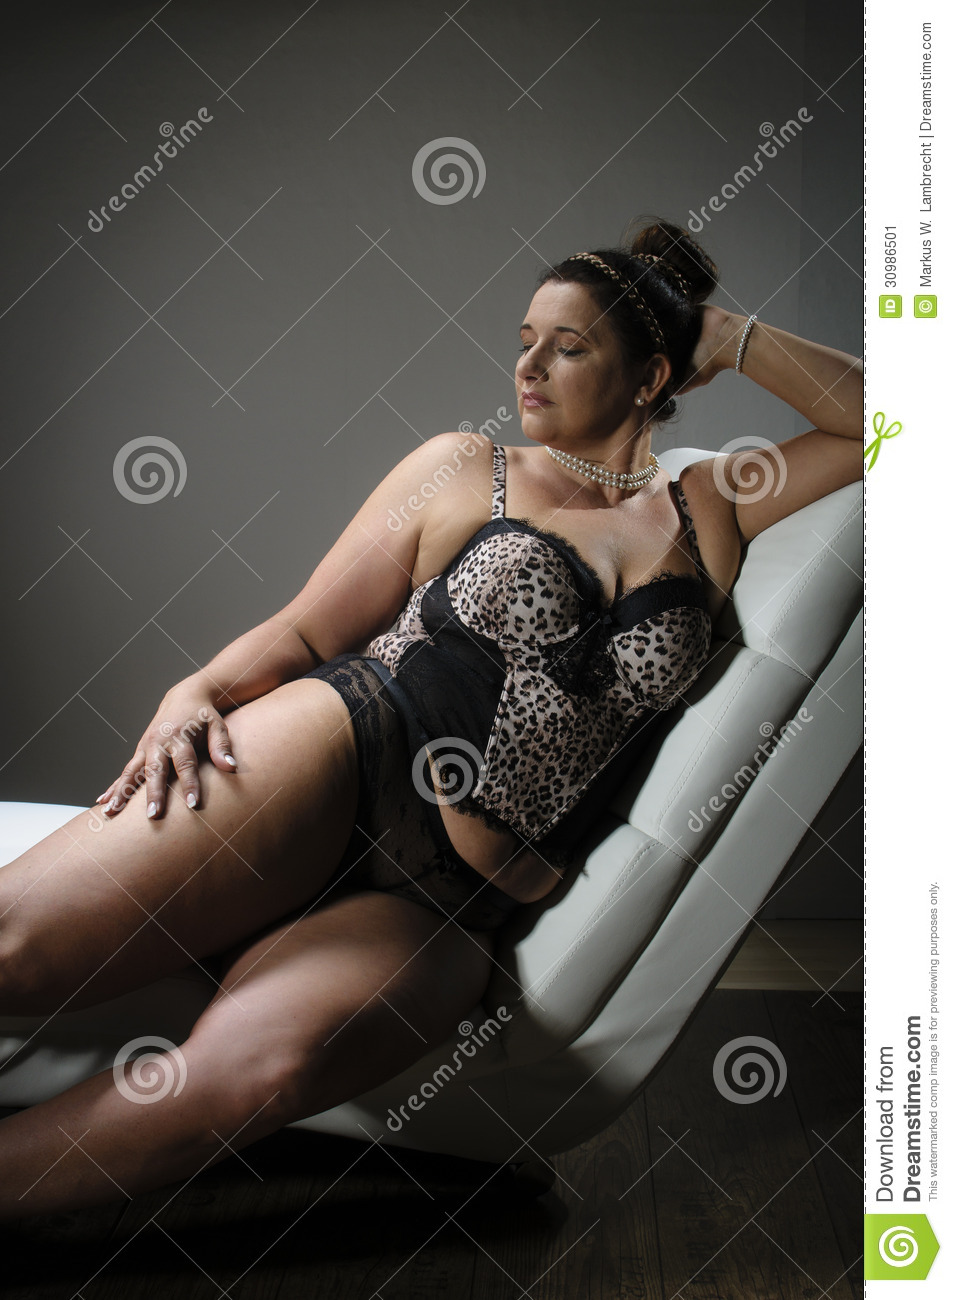 d43ed92b7c7 Beautiful Plus Size Woman On White Armchair Stock Image - Image of ...